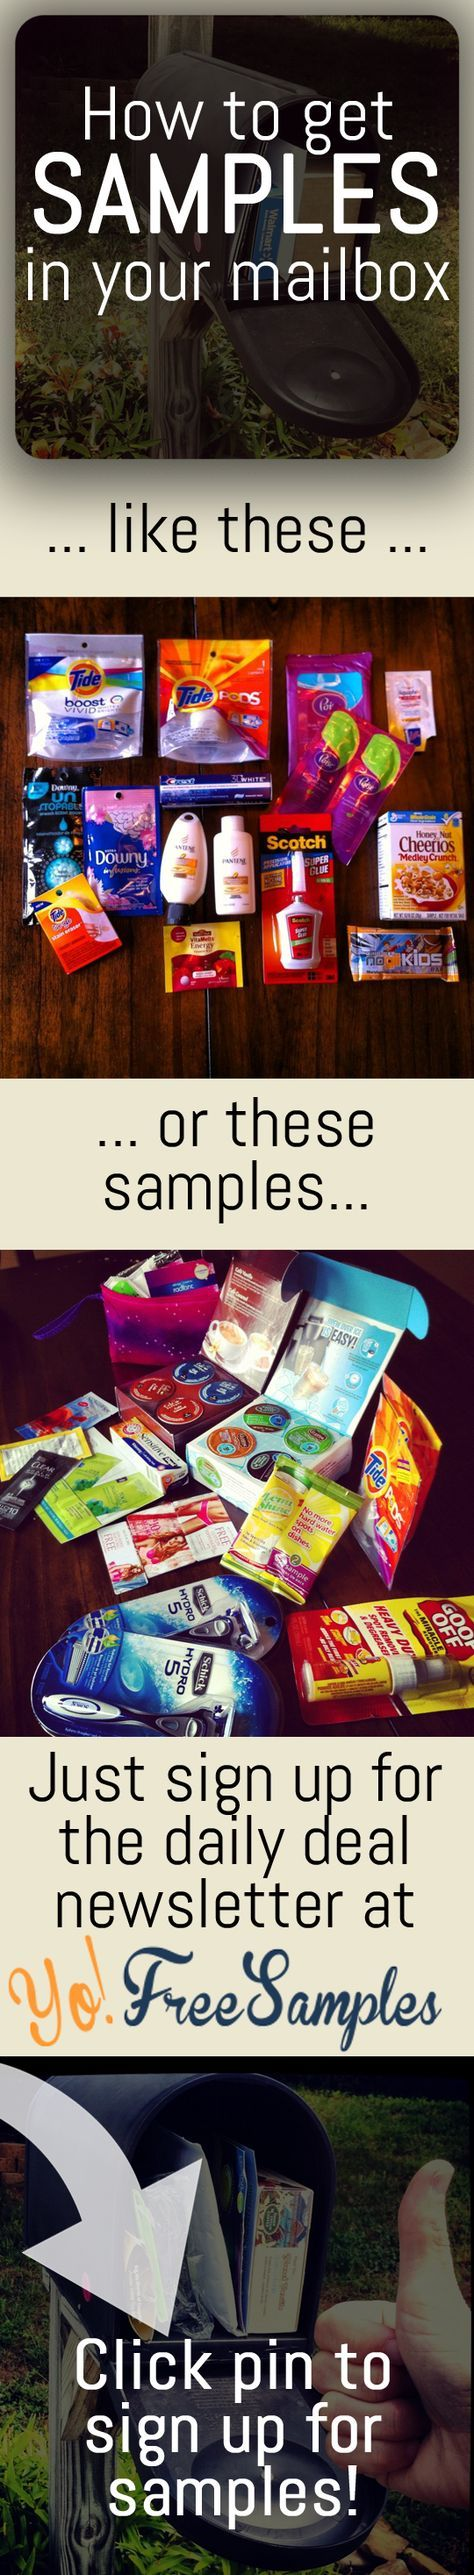 The key to free samples? Our daily newsletter. Sign up here: http://yofreesamples.com/sign-up-for-totally-free-samples-by-mail/?utm_source=pinterest&utm_medium=organic&utm_campaign=pintest1